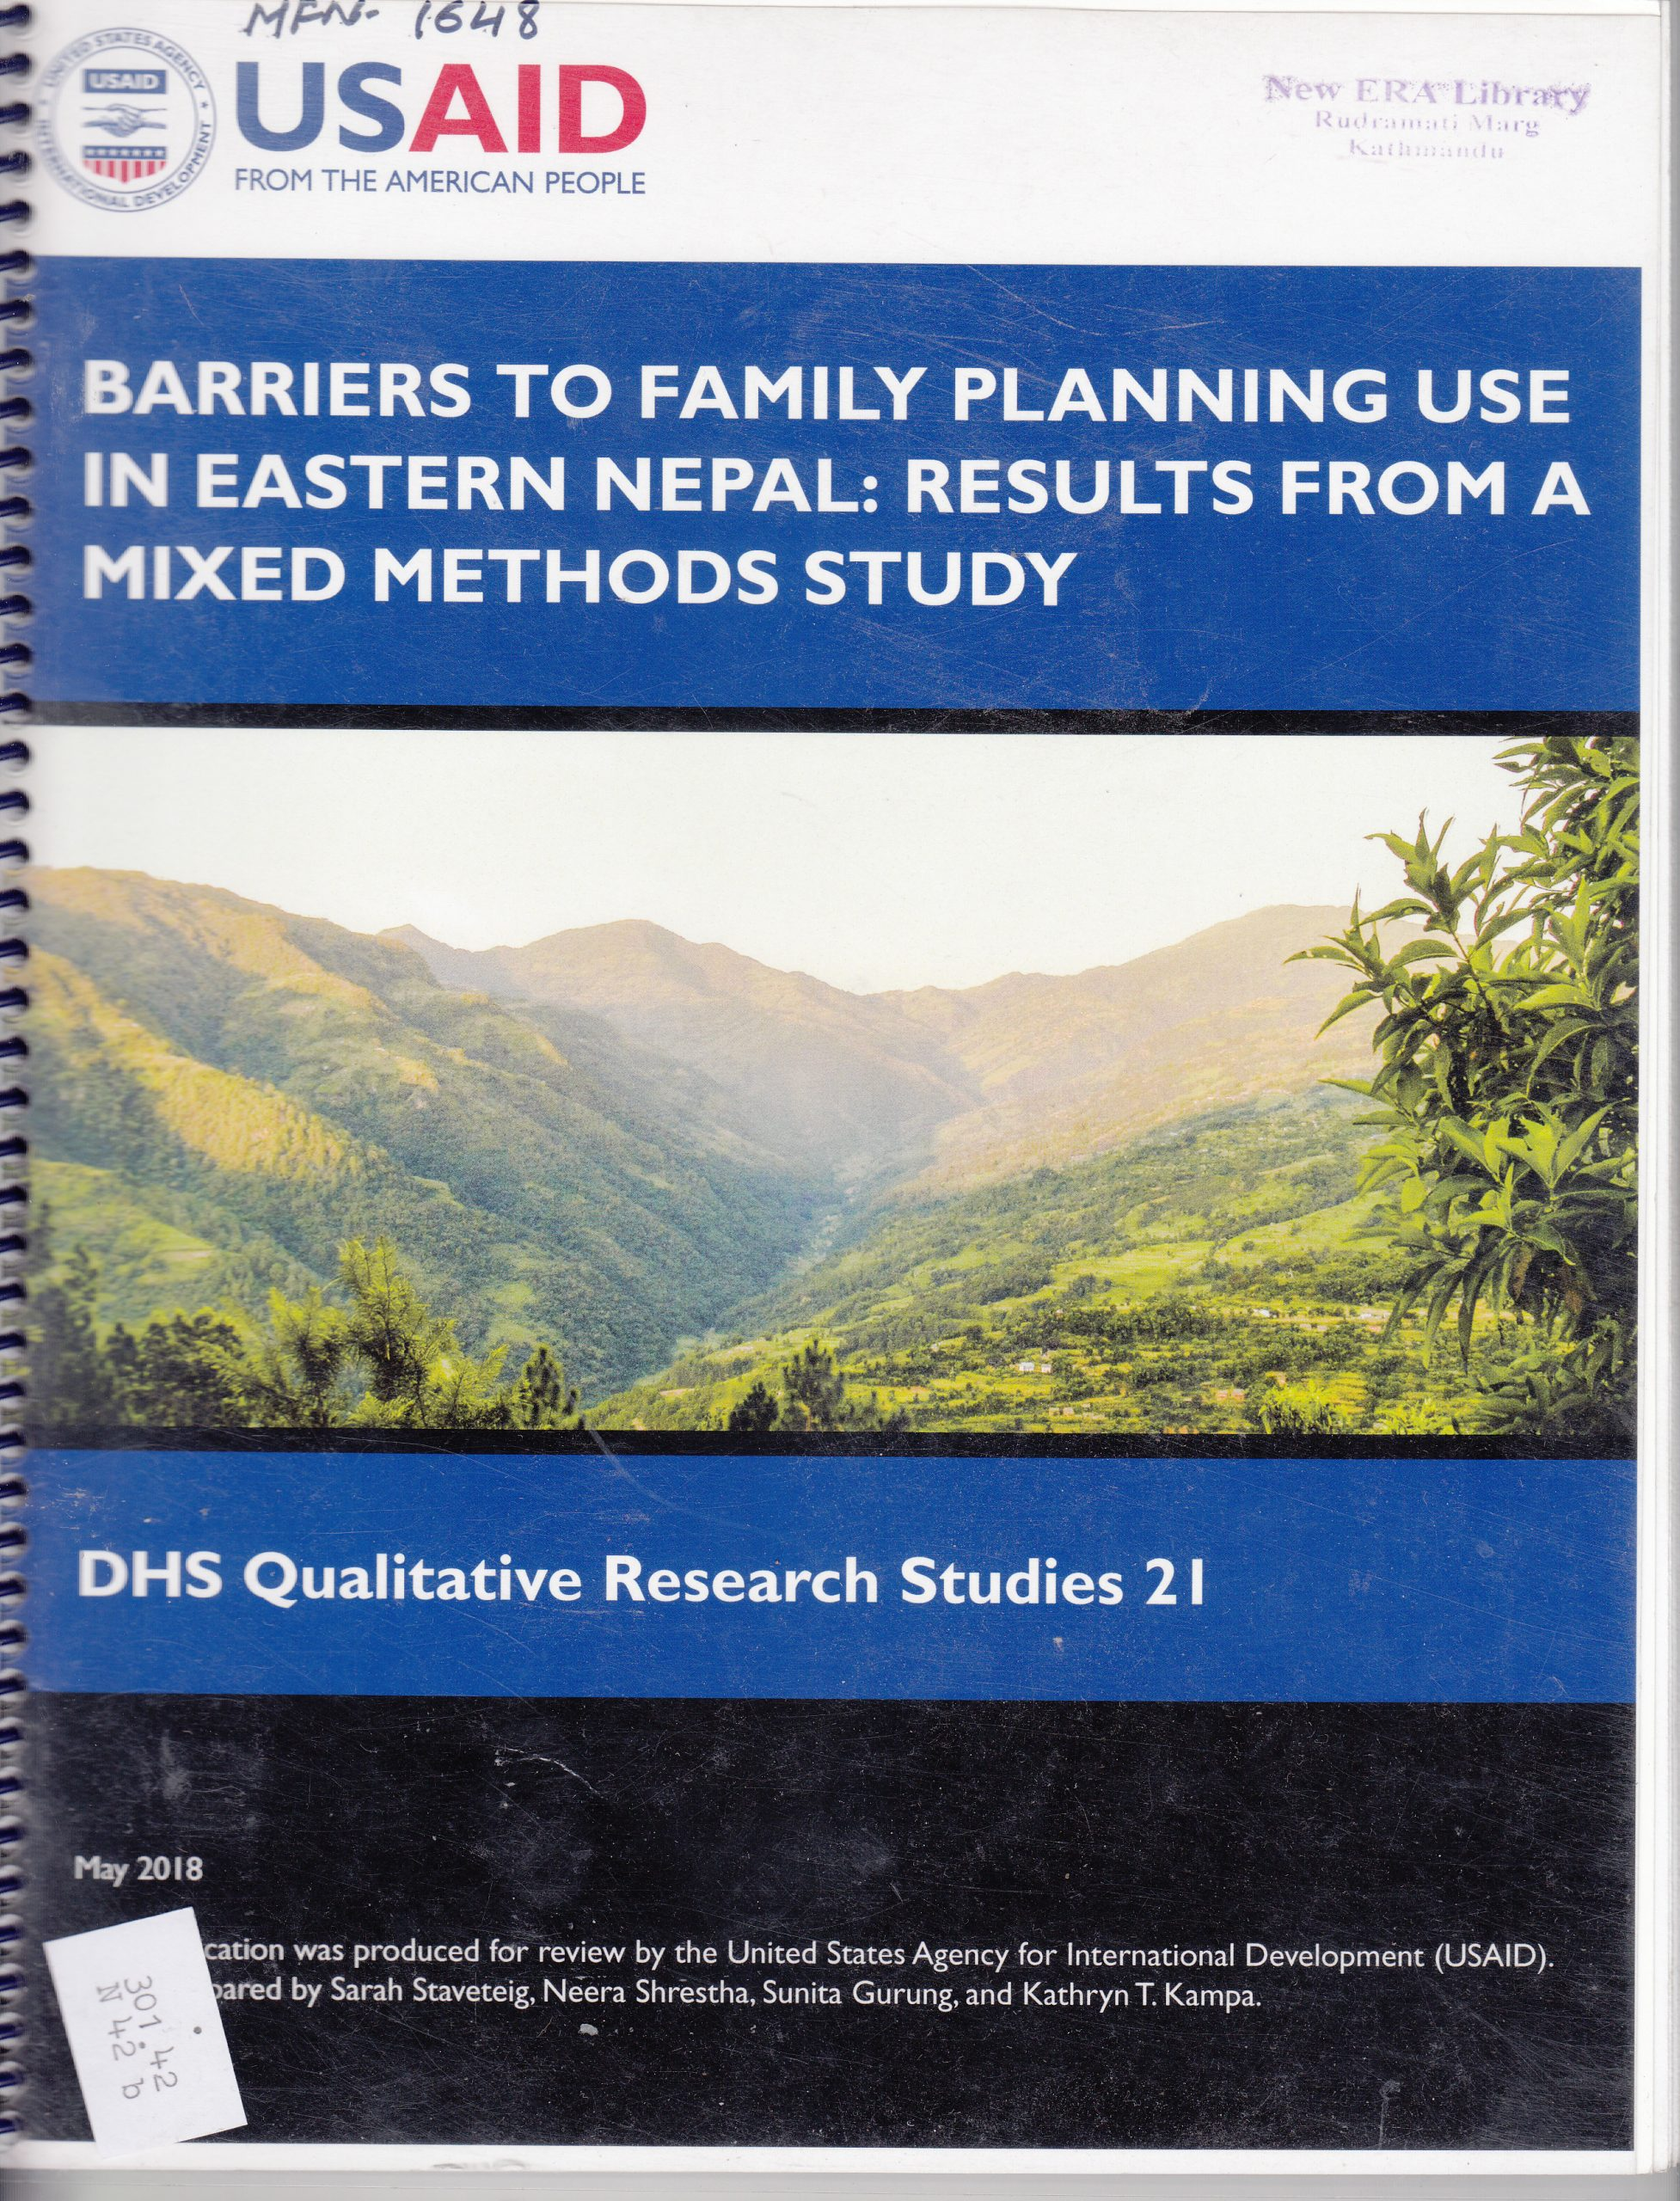 Barriers to Family Planning Use in Eastern Nepal: Results from a Mixed Methods Study